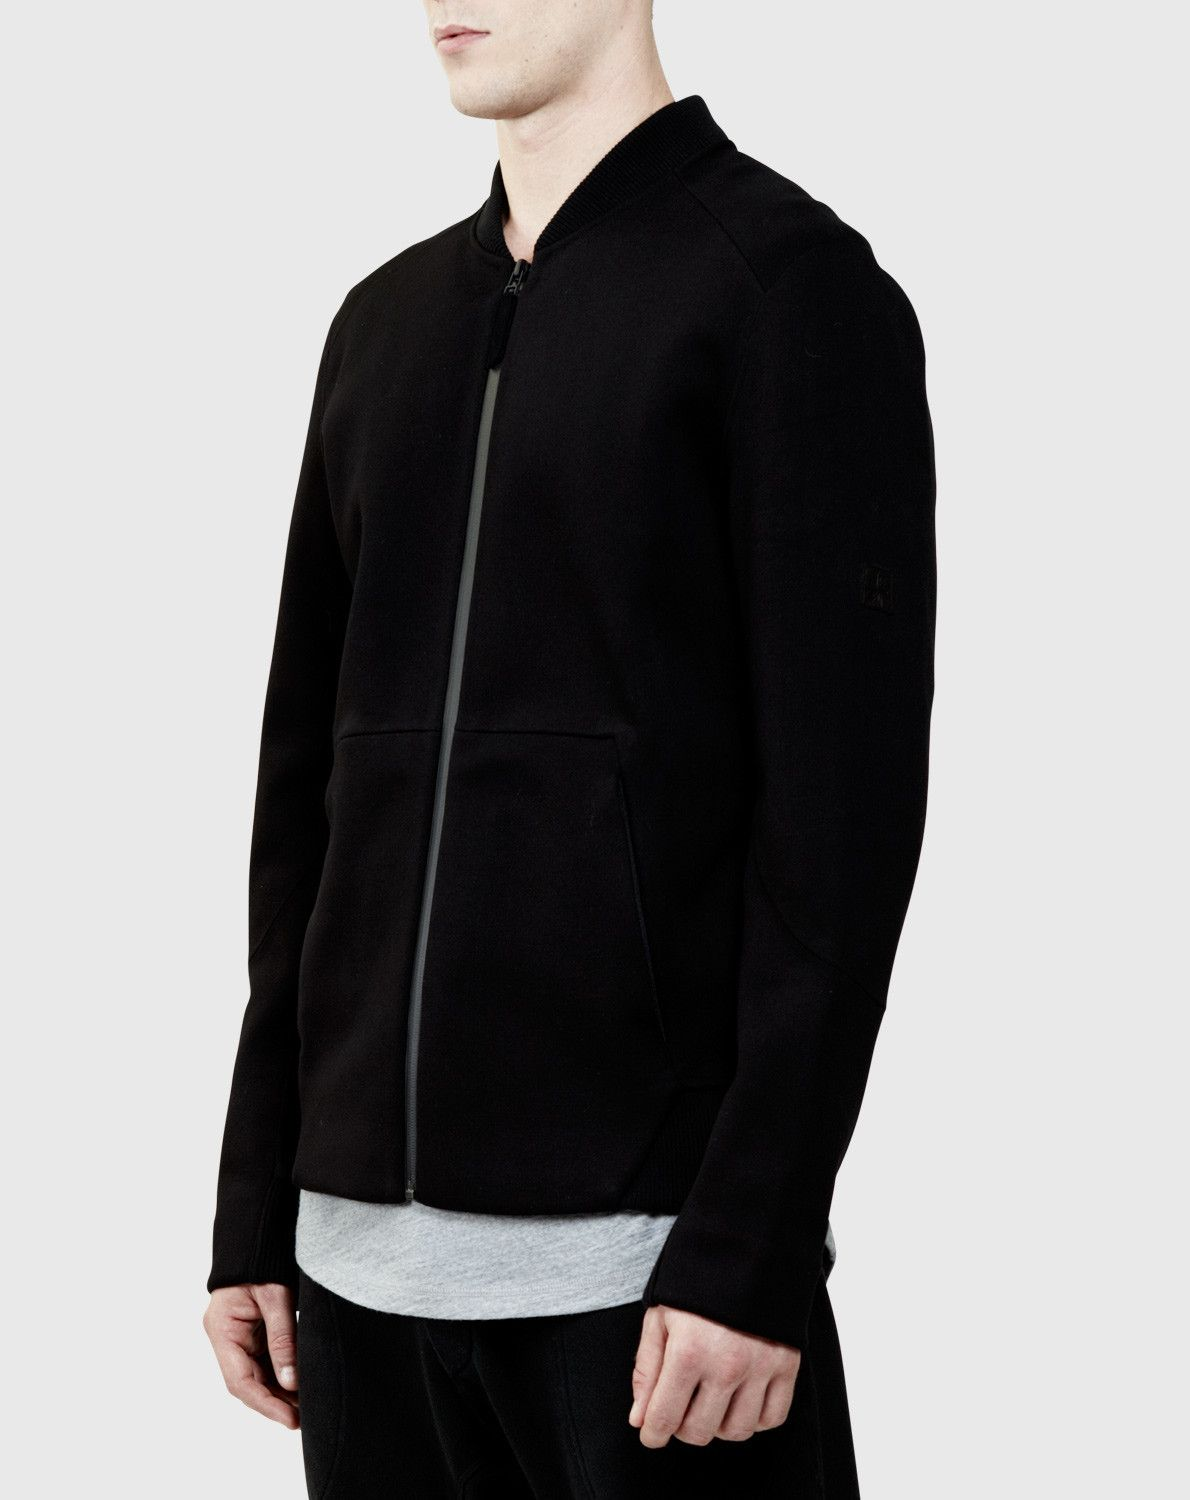 ISAORA nailed it with this one. It looks so tactical! Seam Sealed Bomber Jacket | ISAORA